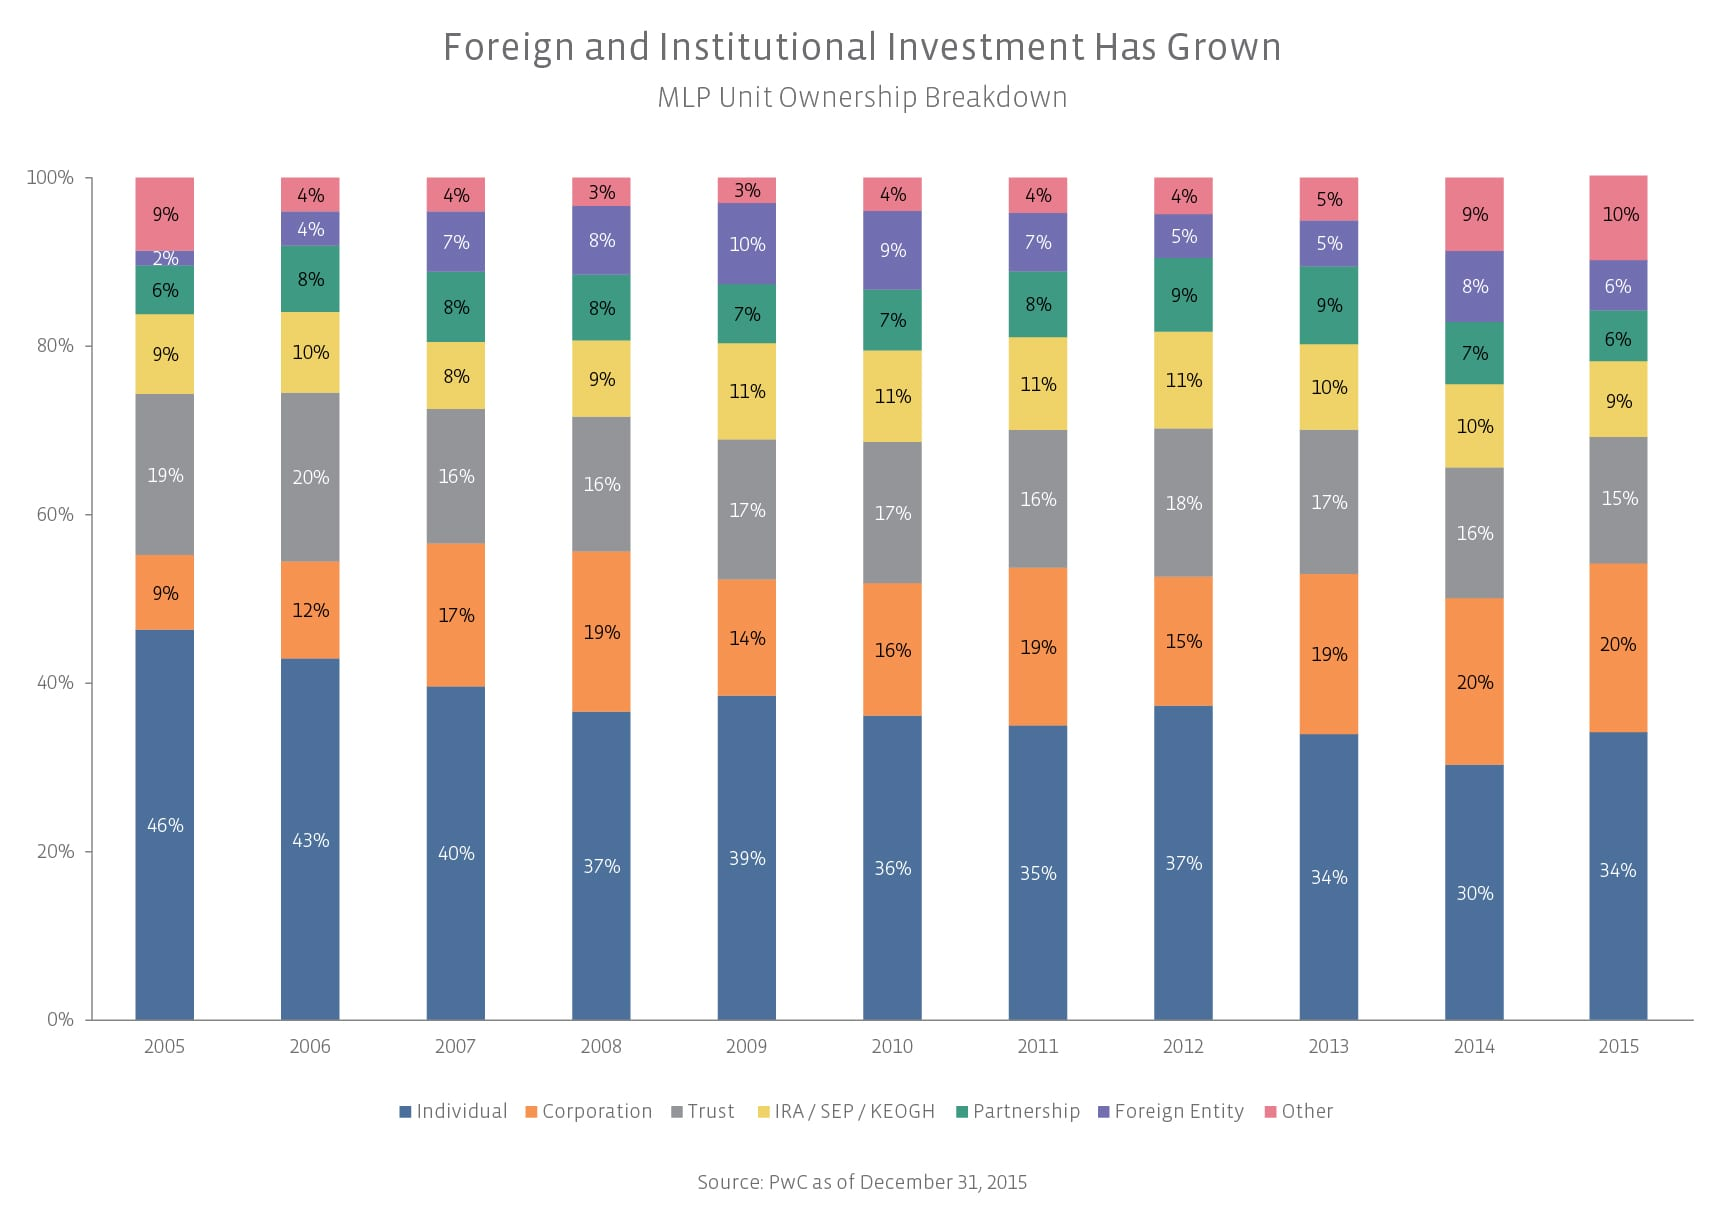 foreign_and_institutional_investment_has_grown-01